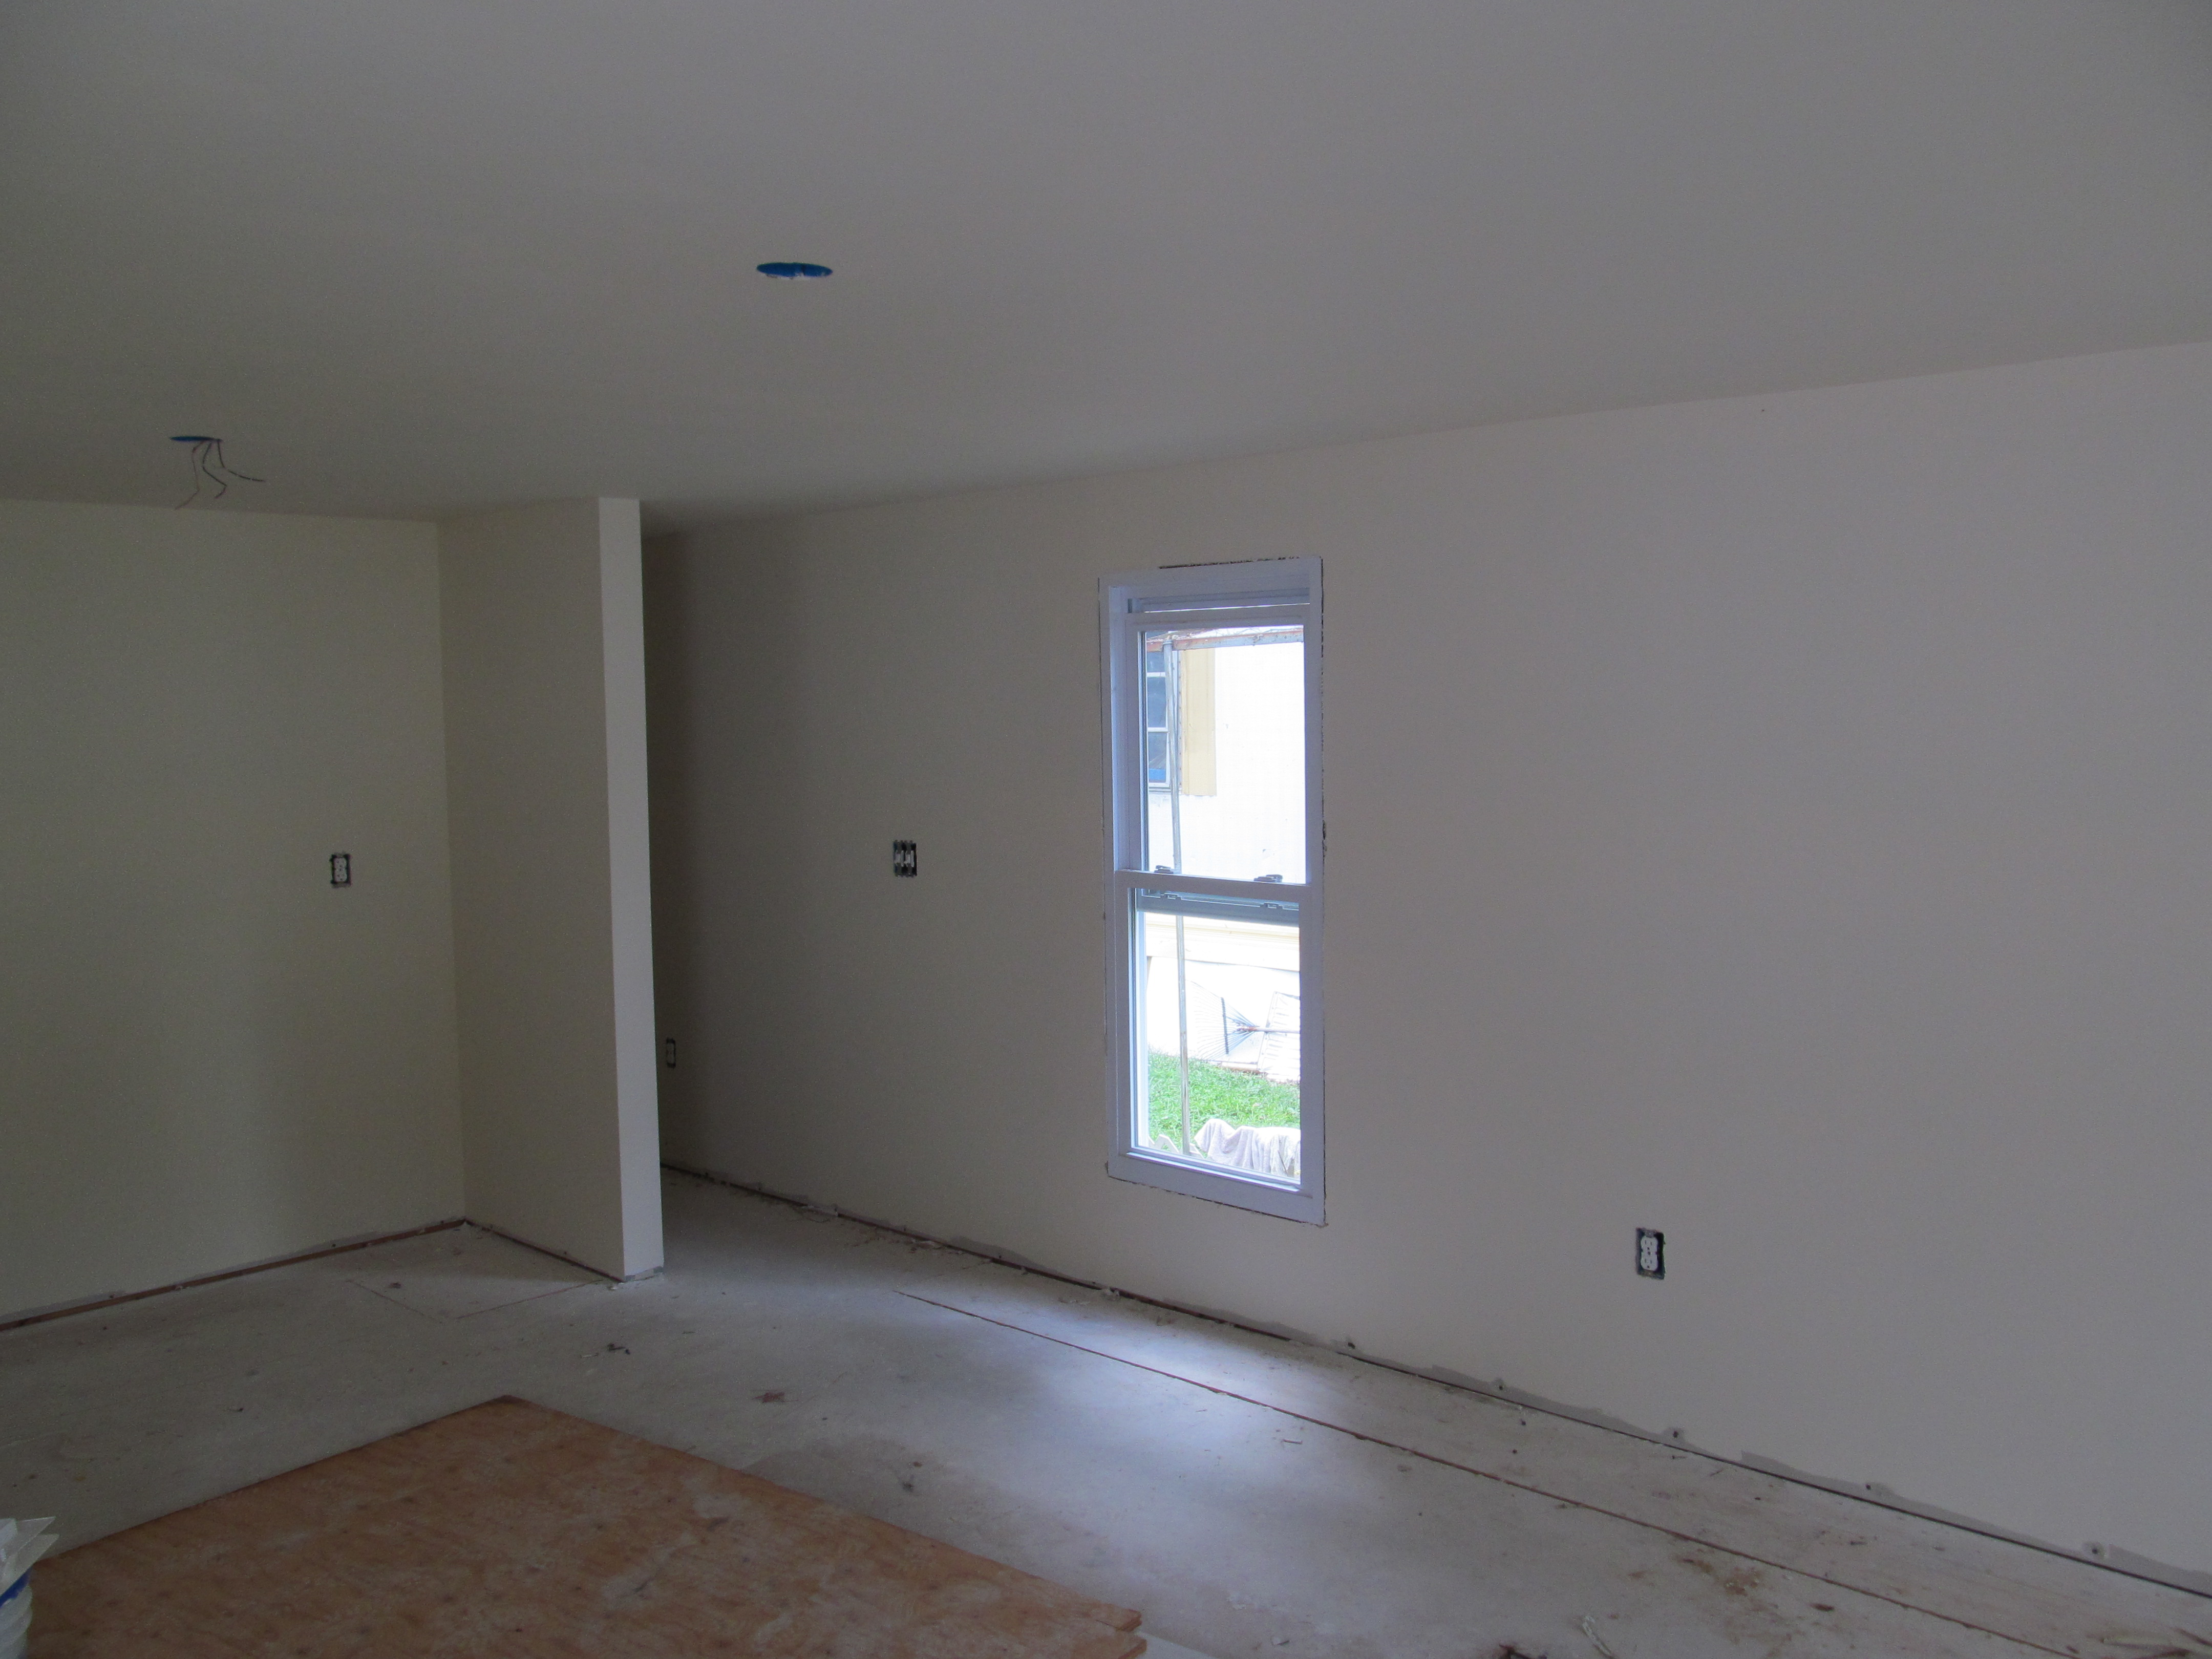 mobile home improvement front room with hallway and window